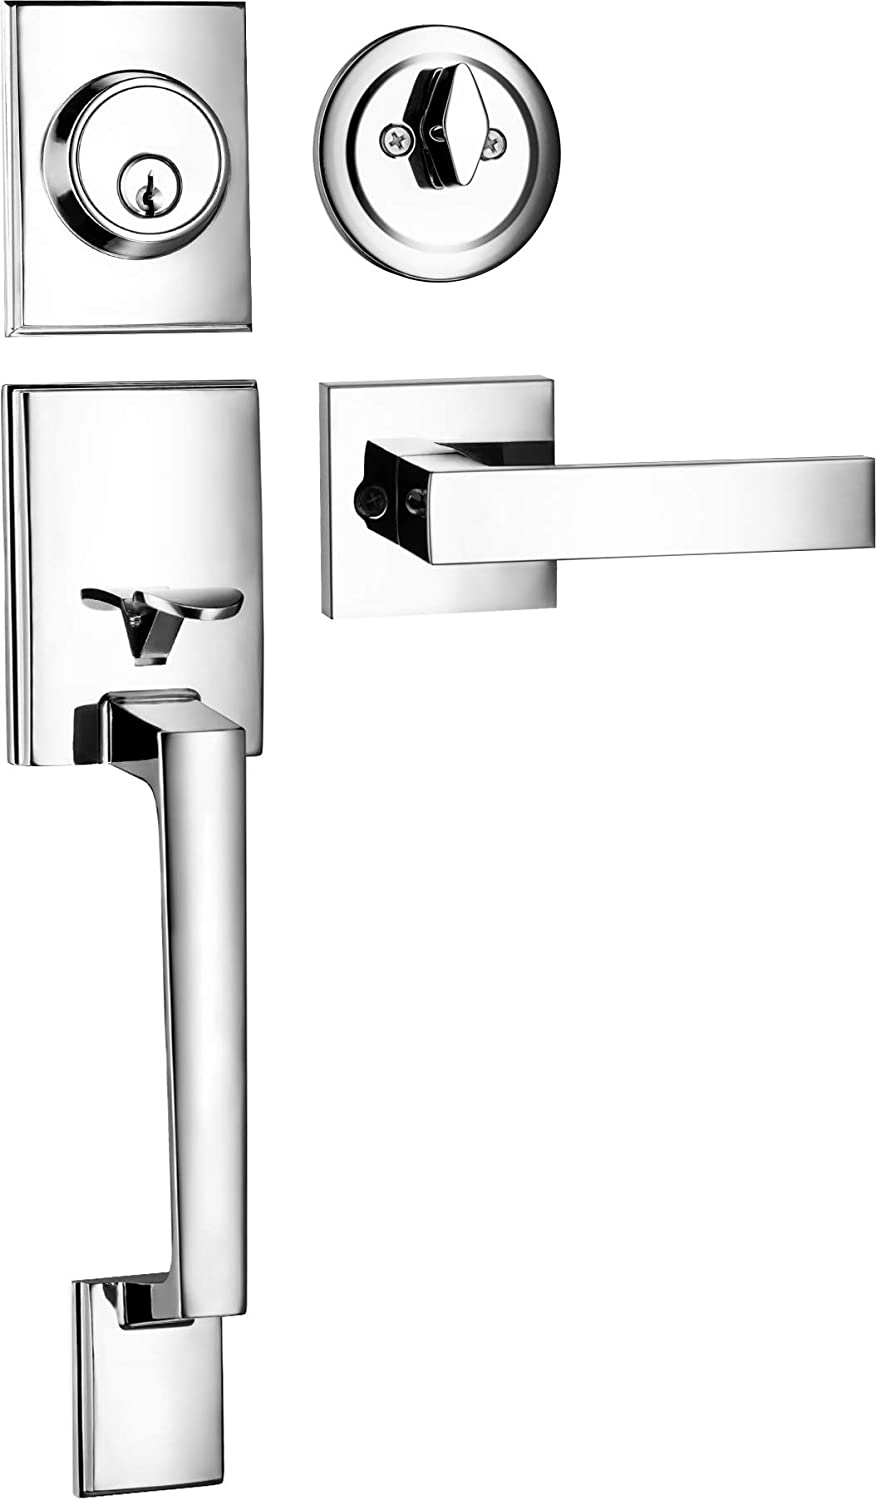 Berlin Modisch HandleSet Front Door Entry Handle and Deadbolt Lock Set Slim Square Single Cylinder Deadbolt and Lever Reversible for Right /& Left Sided Doors Heavy Duty Polished Chrome Finish